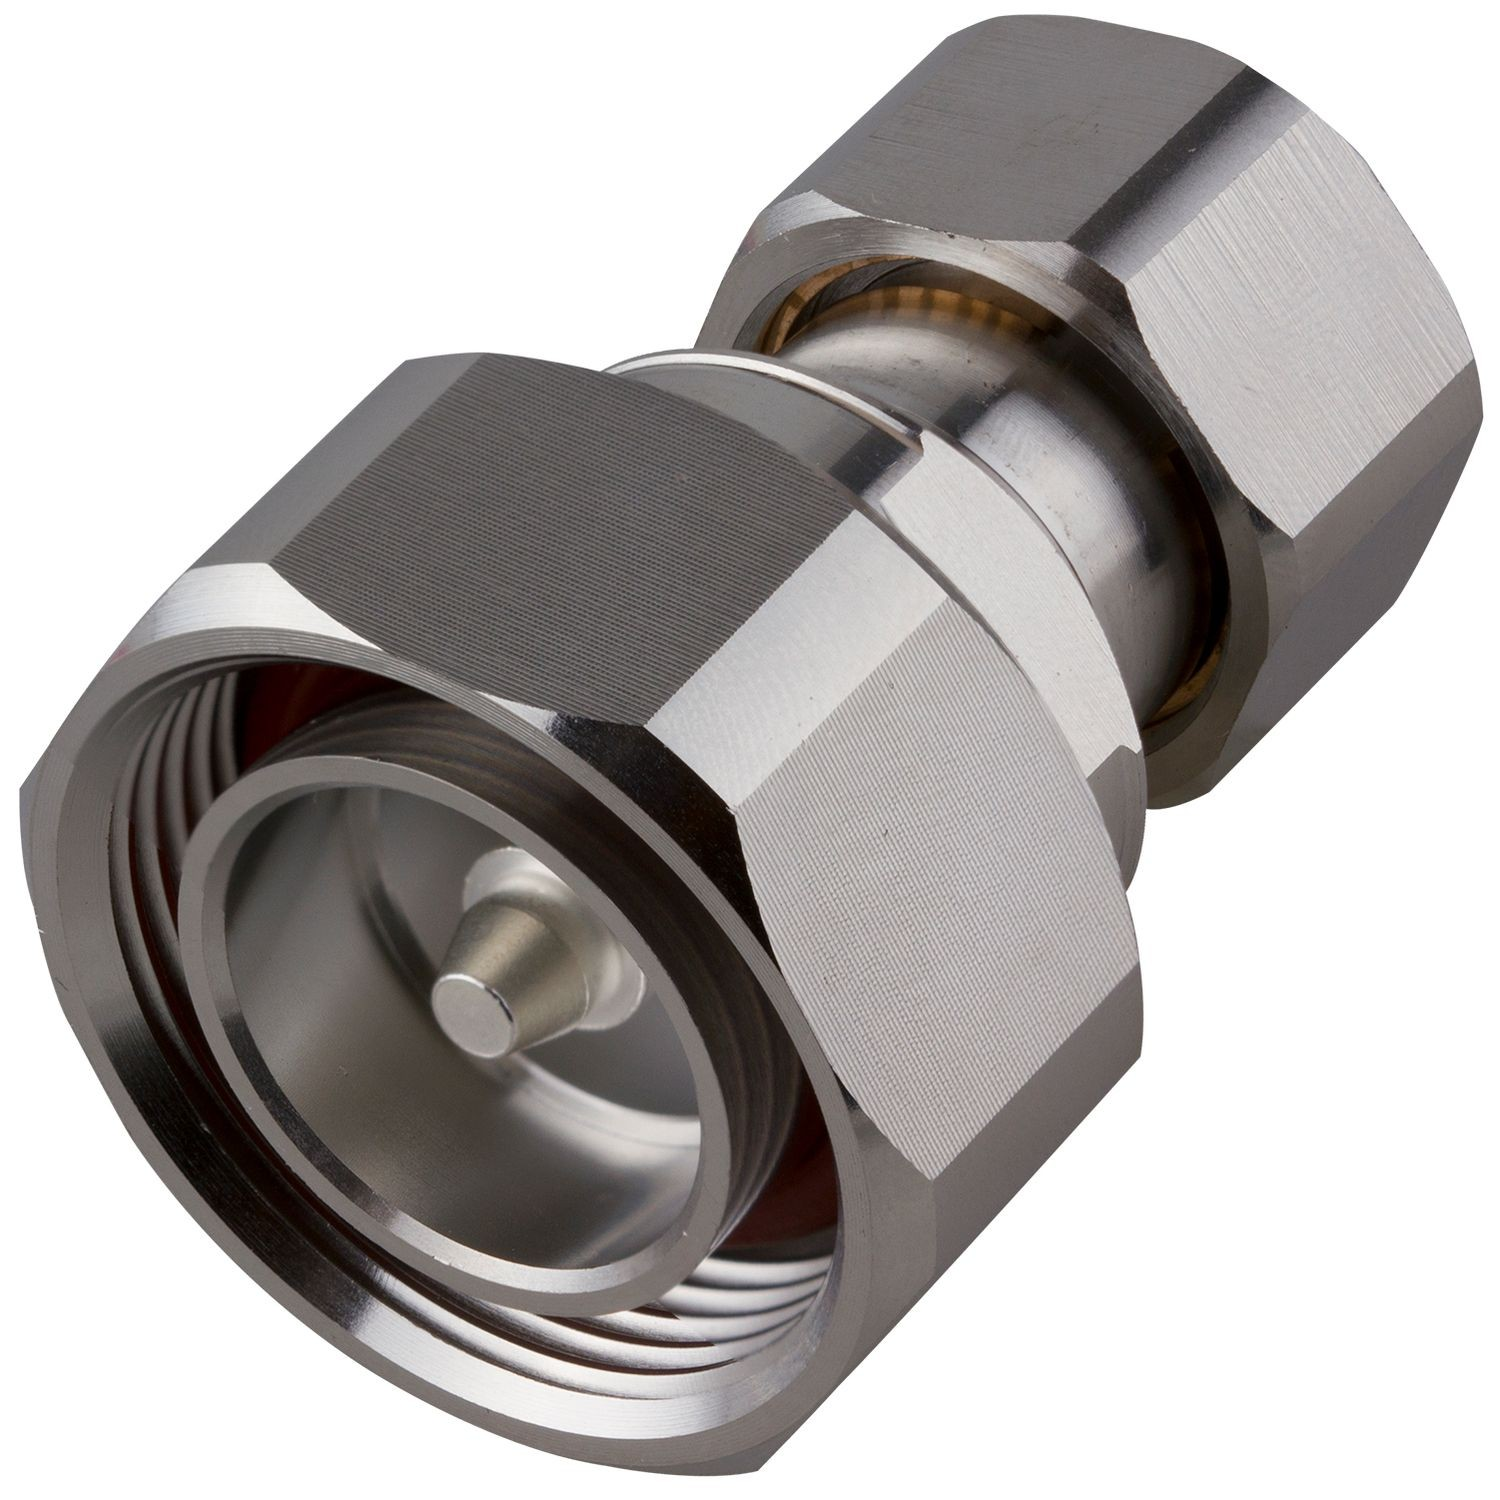 4.3-10 MALE TO 7/16 DIN MALE STRAIGHT LOW PIM ADAPTER, WHITE BRONZE PLATED BODY, SILVER PLATED CONTACT, PTFE DIELECTRIC